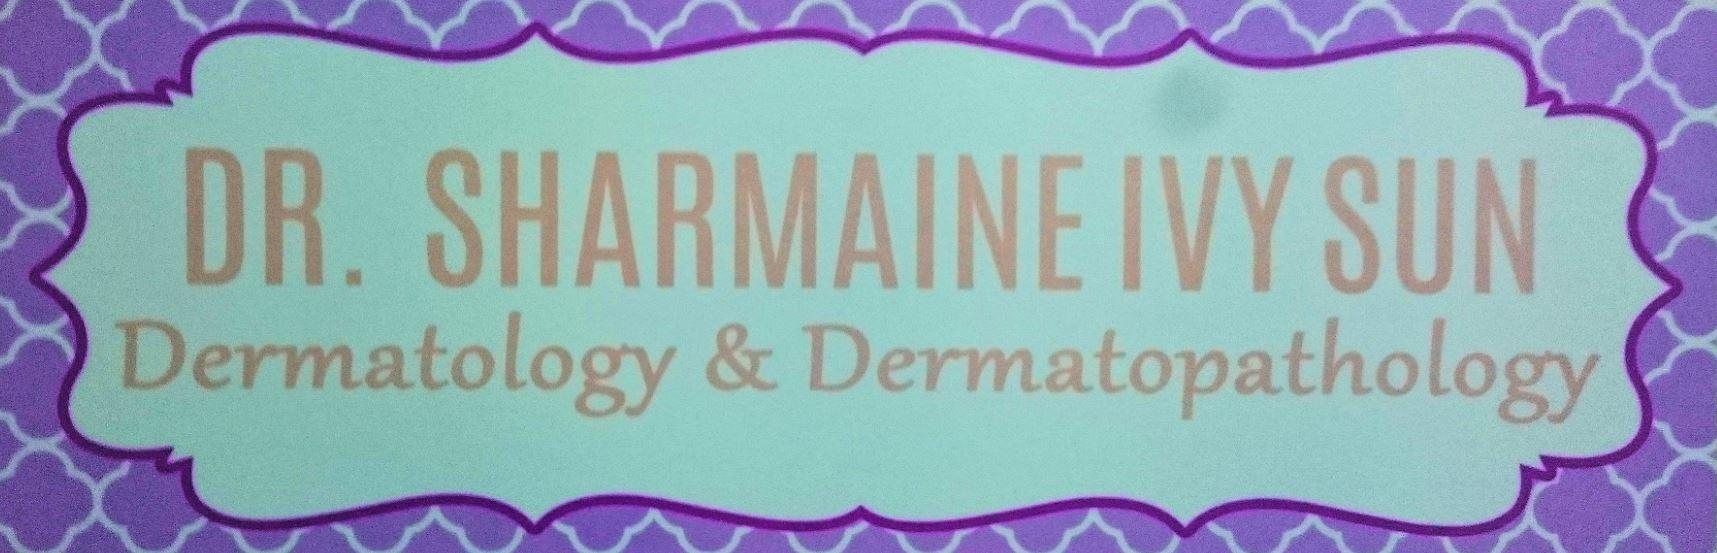 Dr. Sharmaine Ivy Sun's Dermatology Clinic